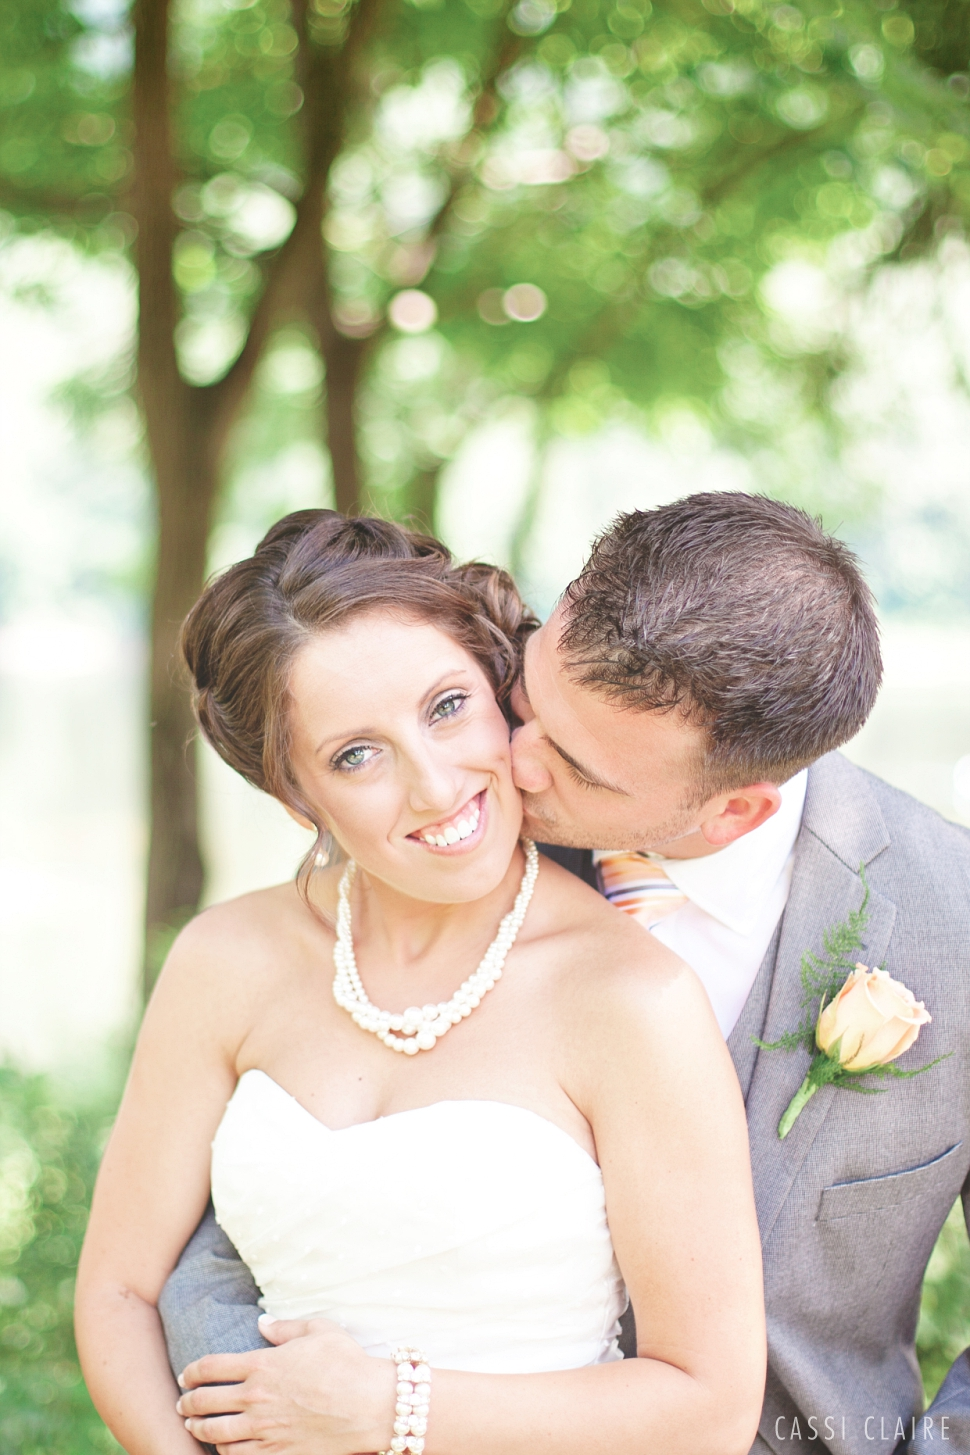 Shawnee-Inn-Wedding-Photographer_CassiClaire_12.jpg